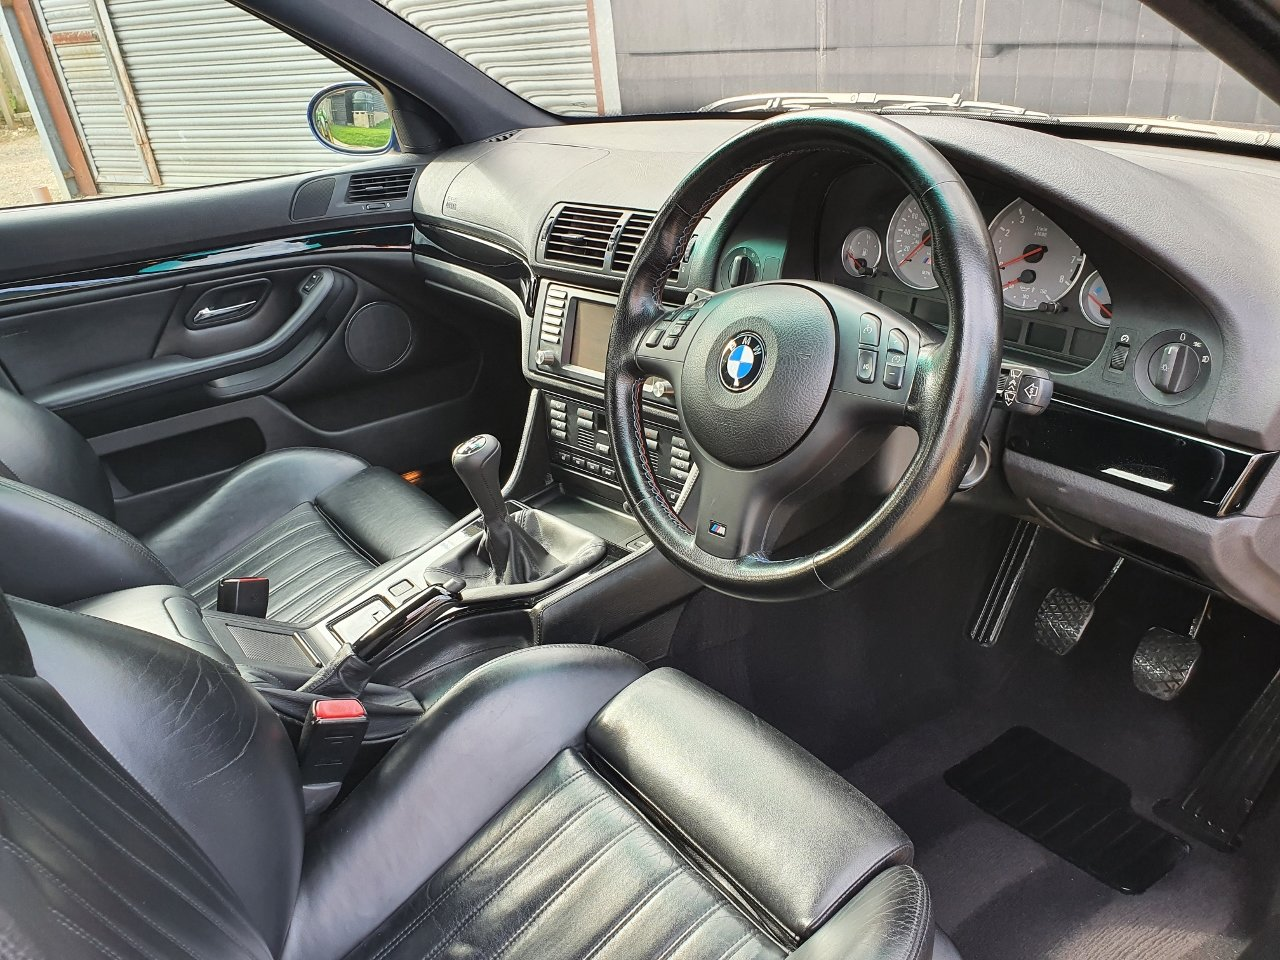 2001 Only 44,000 Miles - Le Mans Blue E39 M5 - Full History SOLD (picture 7 of 10)